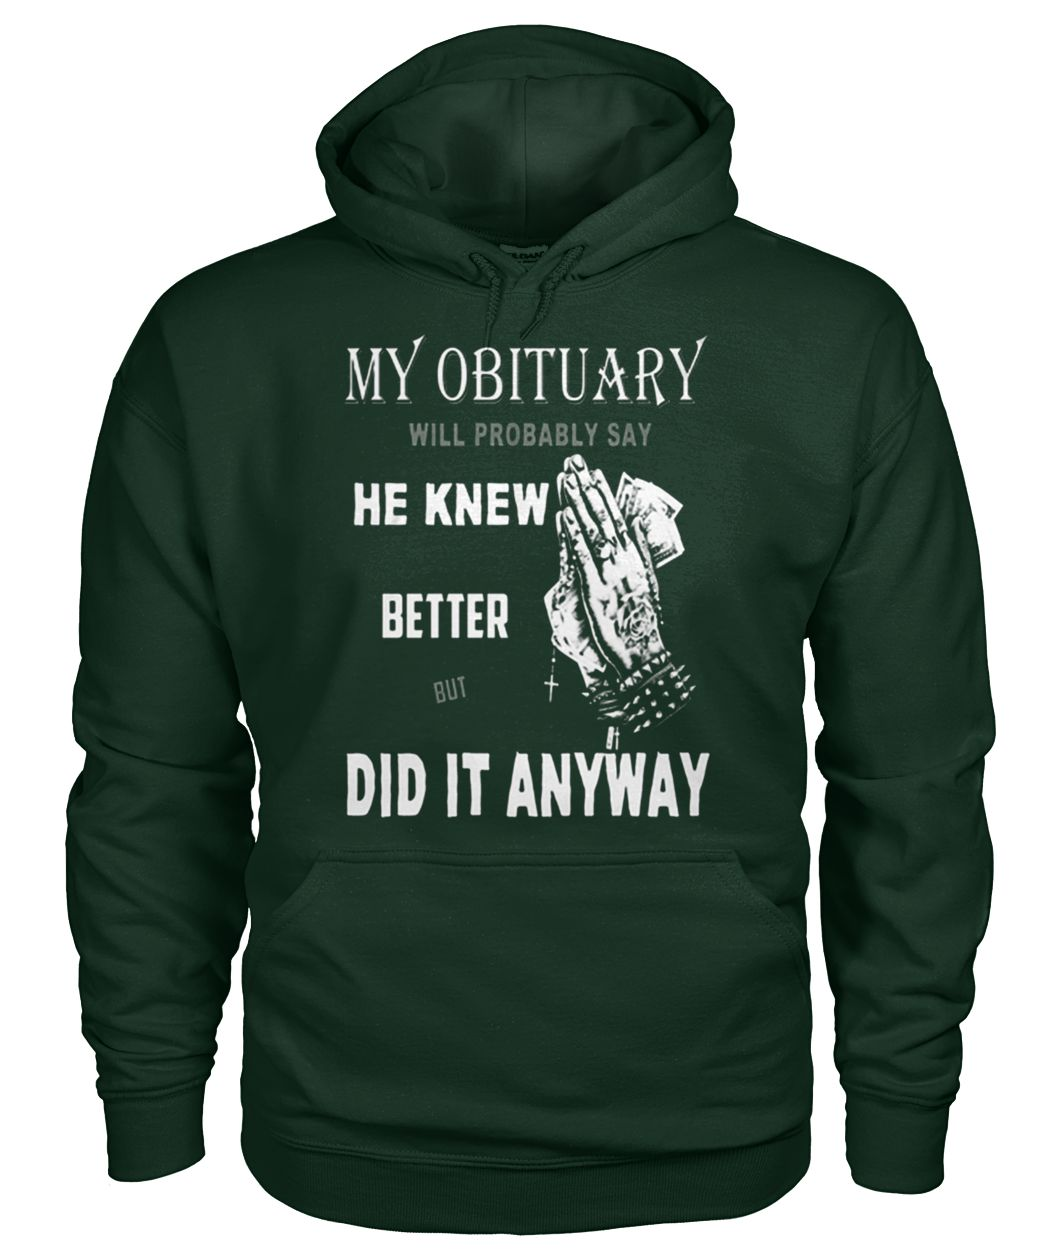 My obituary will be probably say he knew better but did it anyway gildan hoodie